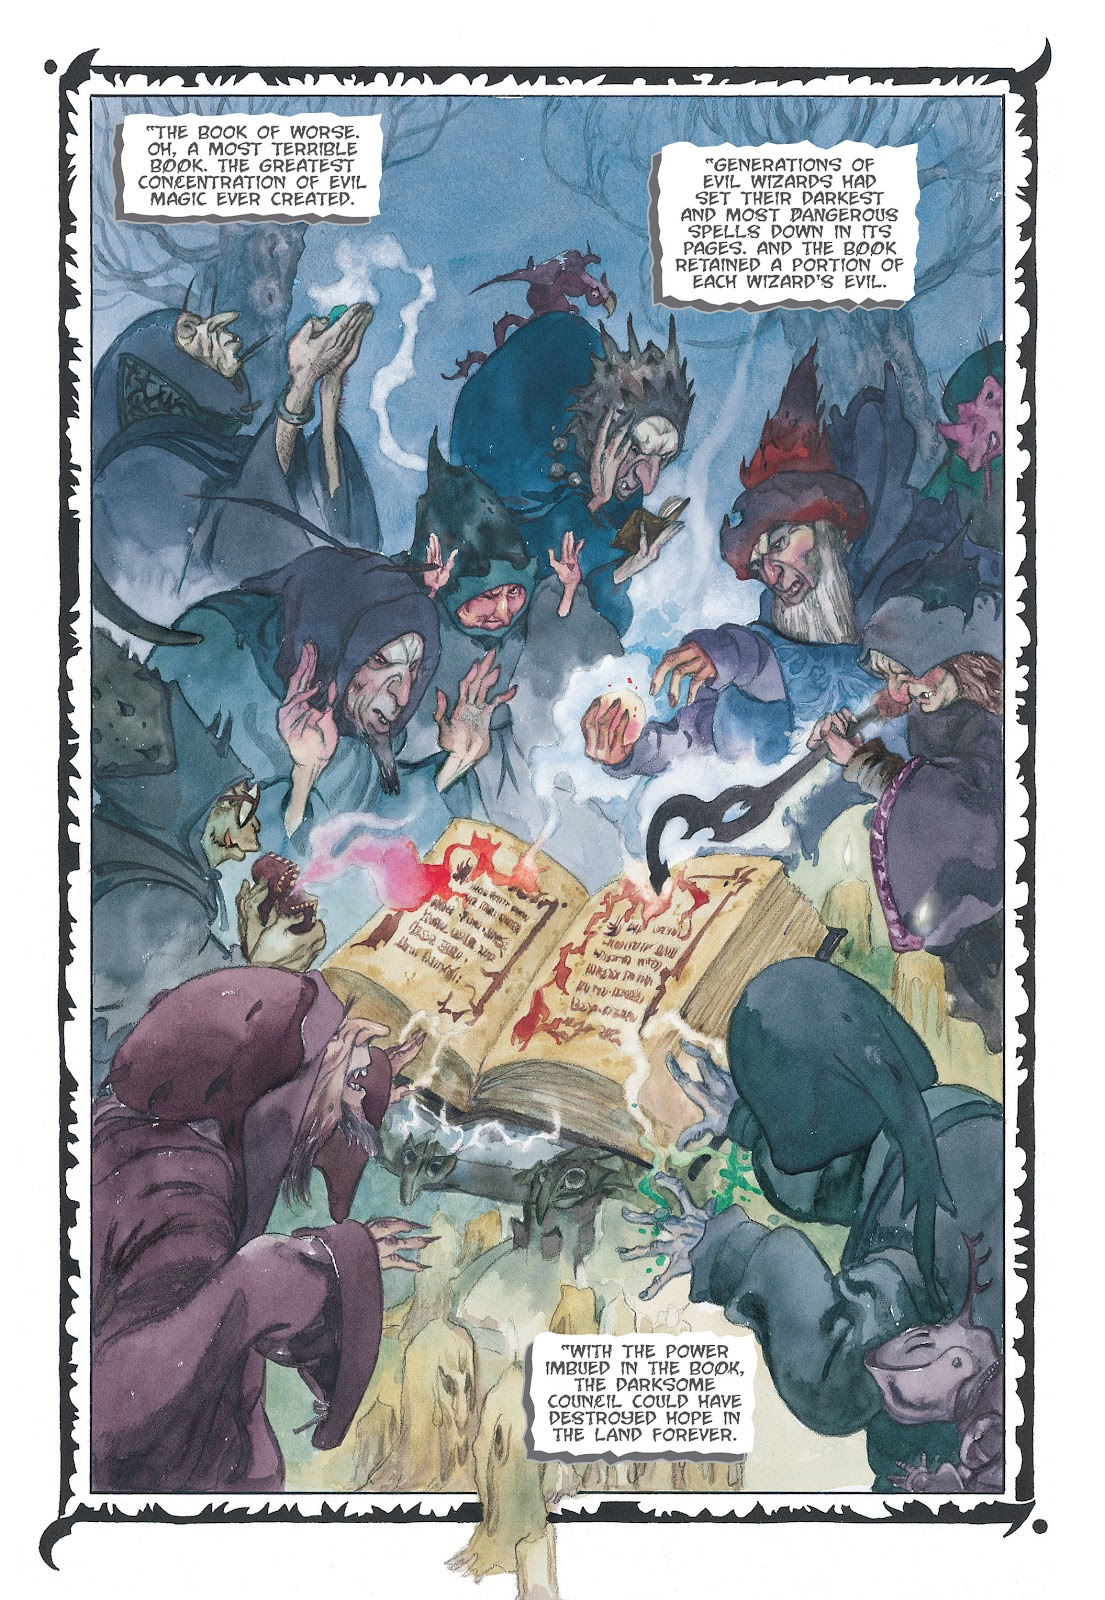 Read online The Wizard's Tale comic -  Issue # TPB - 27